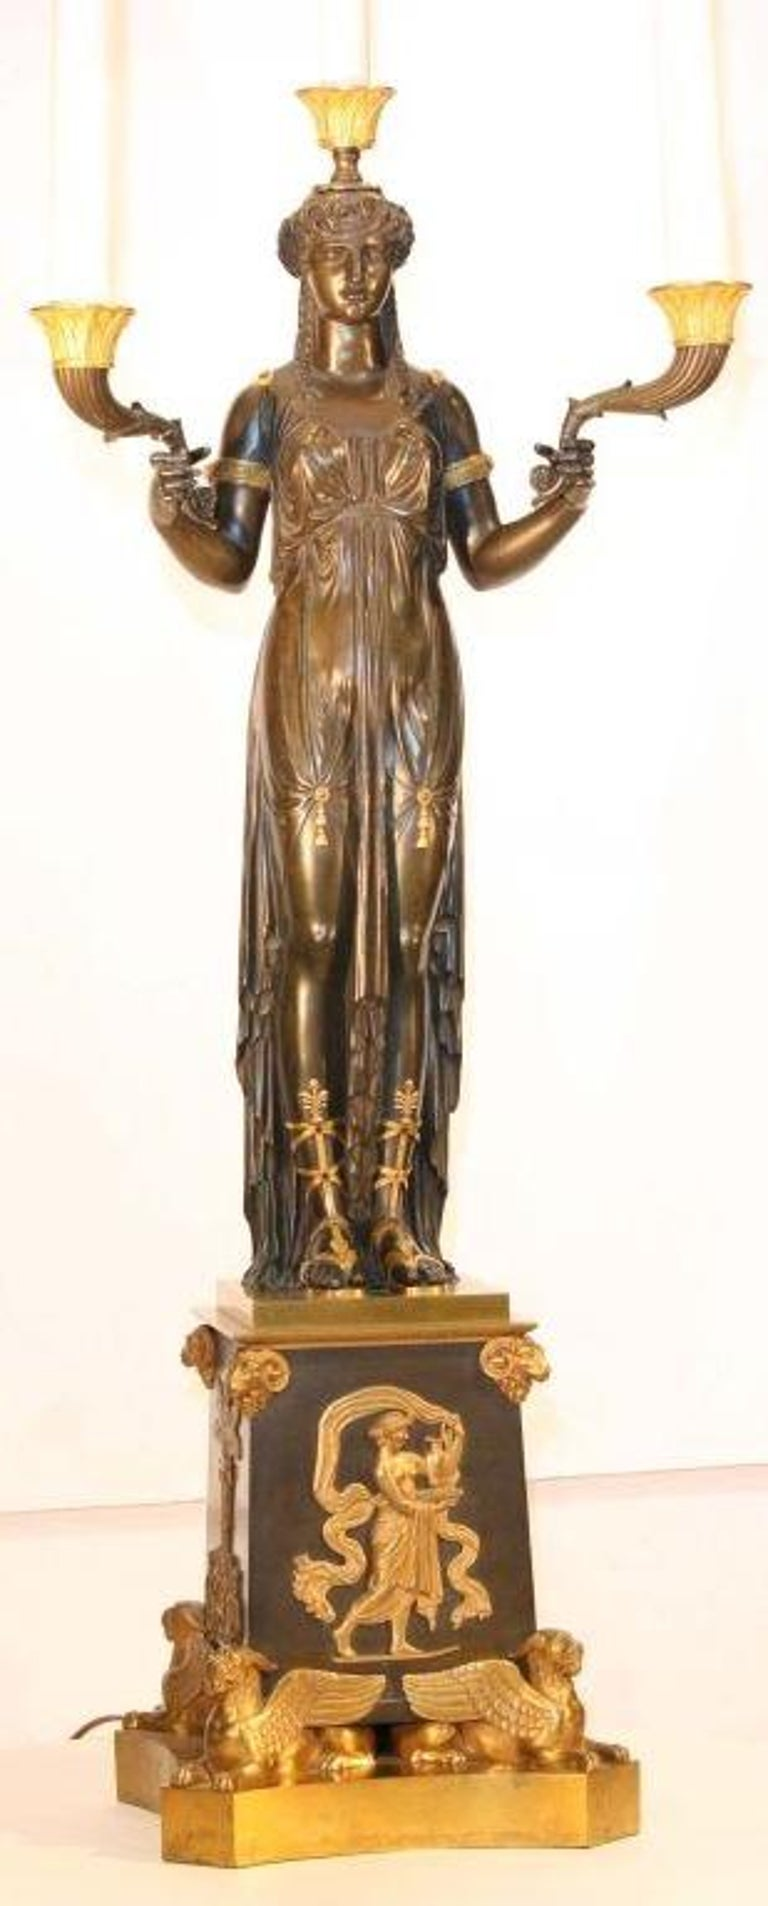 Crisply modelled as a standing godess, supporting ebonised and gilt arms, her slender body clad in a clinging toga with gilt tassels , arm bands, and sandals. She stands on an elaborate tapering square base base applied with gilt mounts and raised